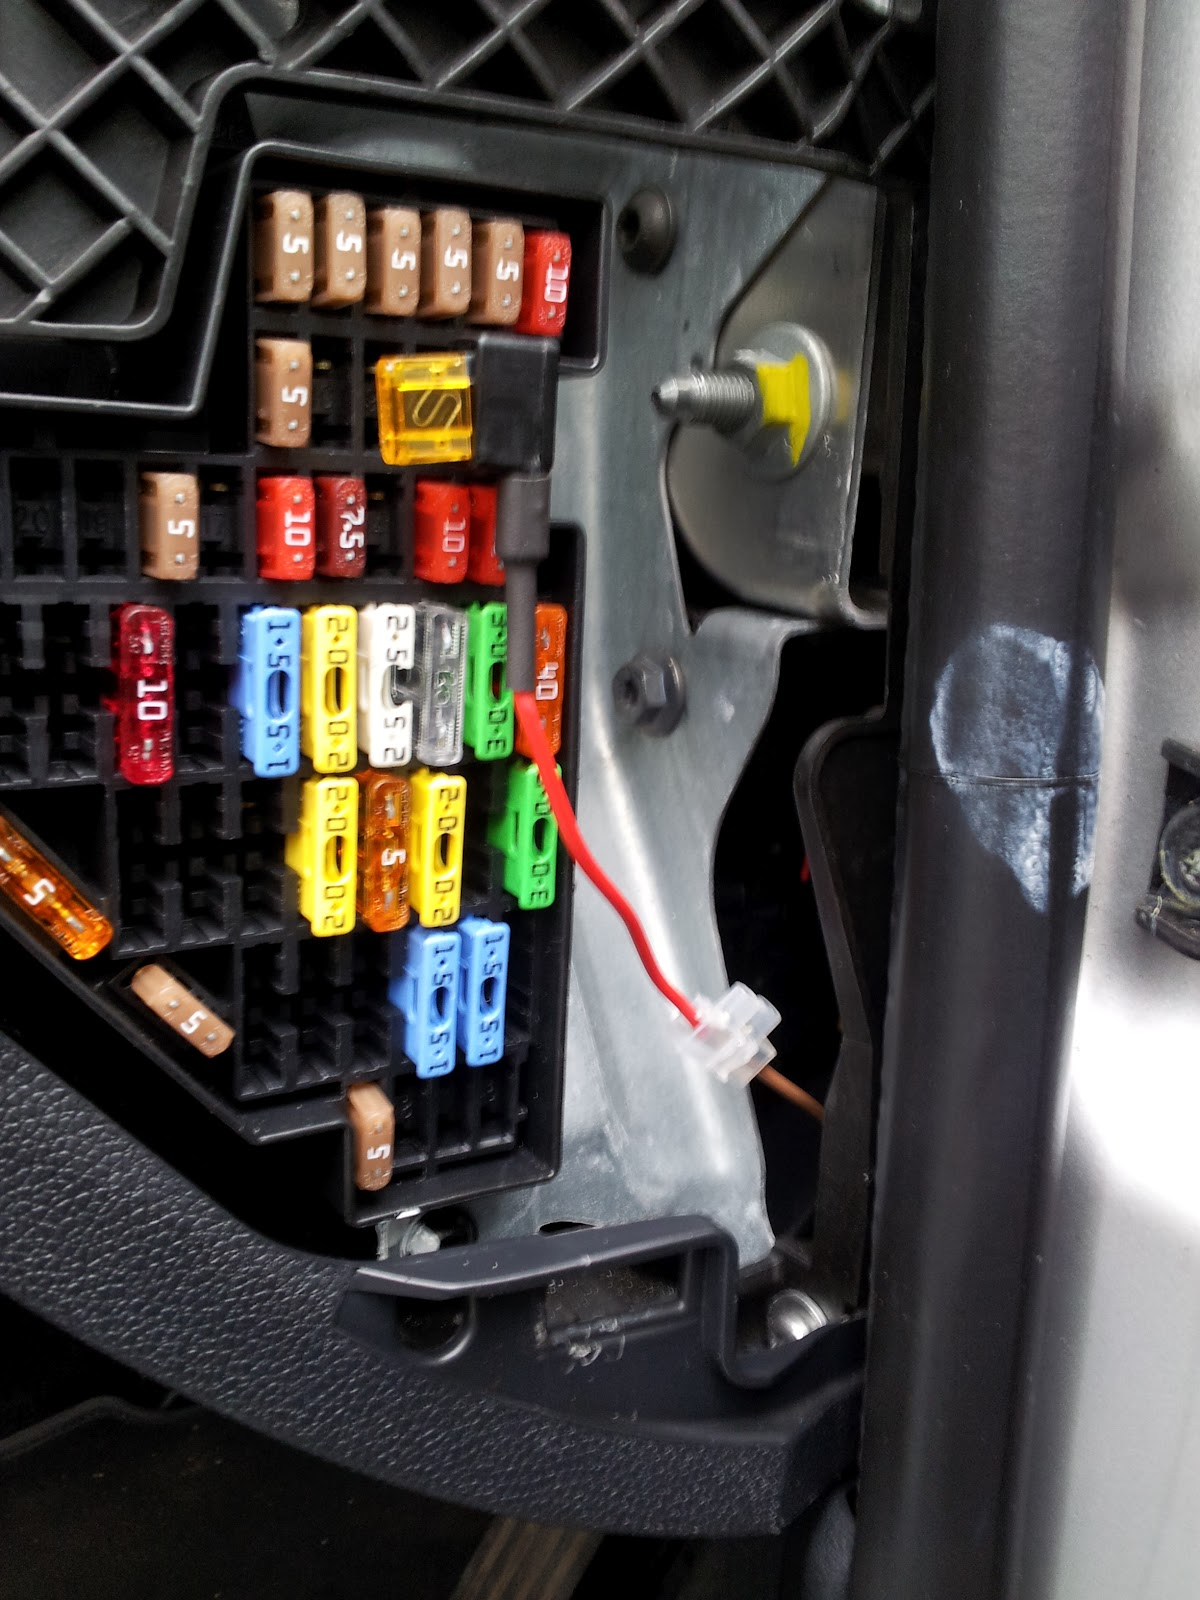 fuse box in skoda rapid technology news - and life in general: fit blutooth in ...